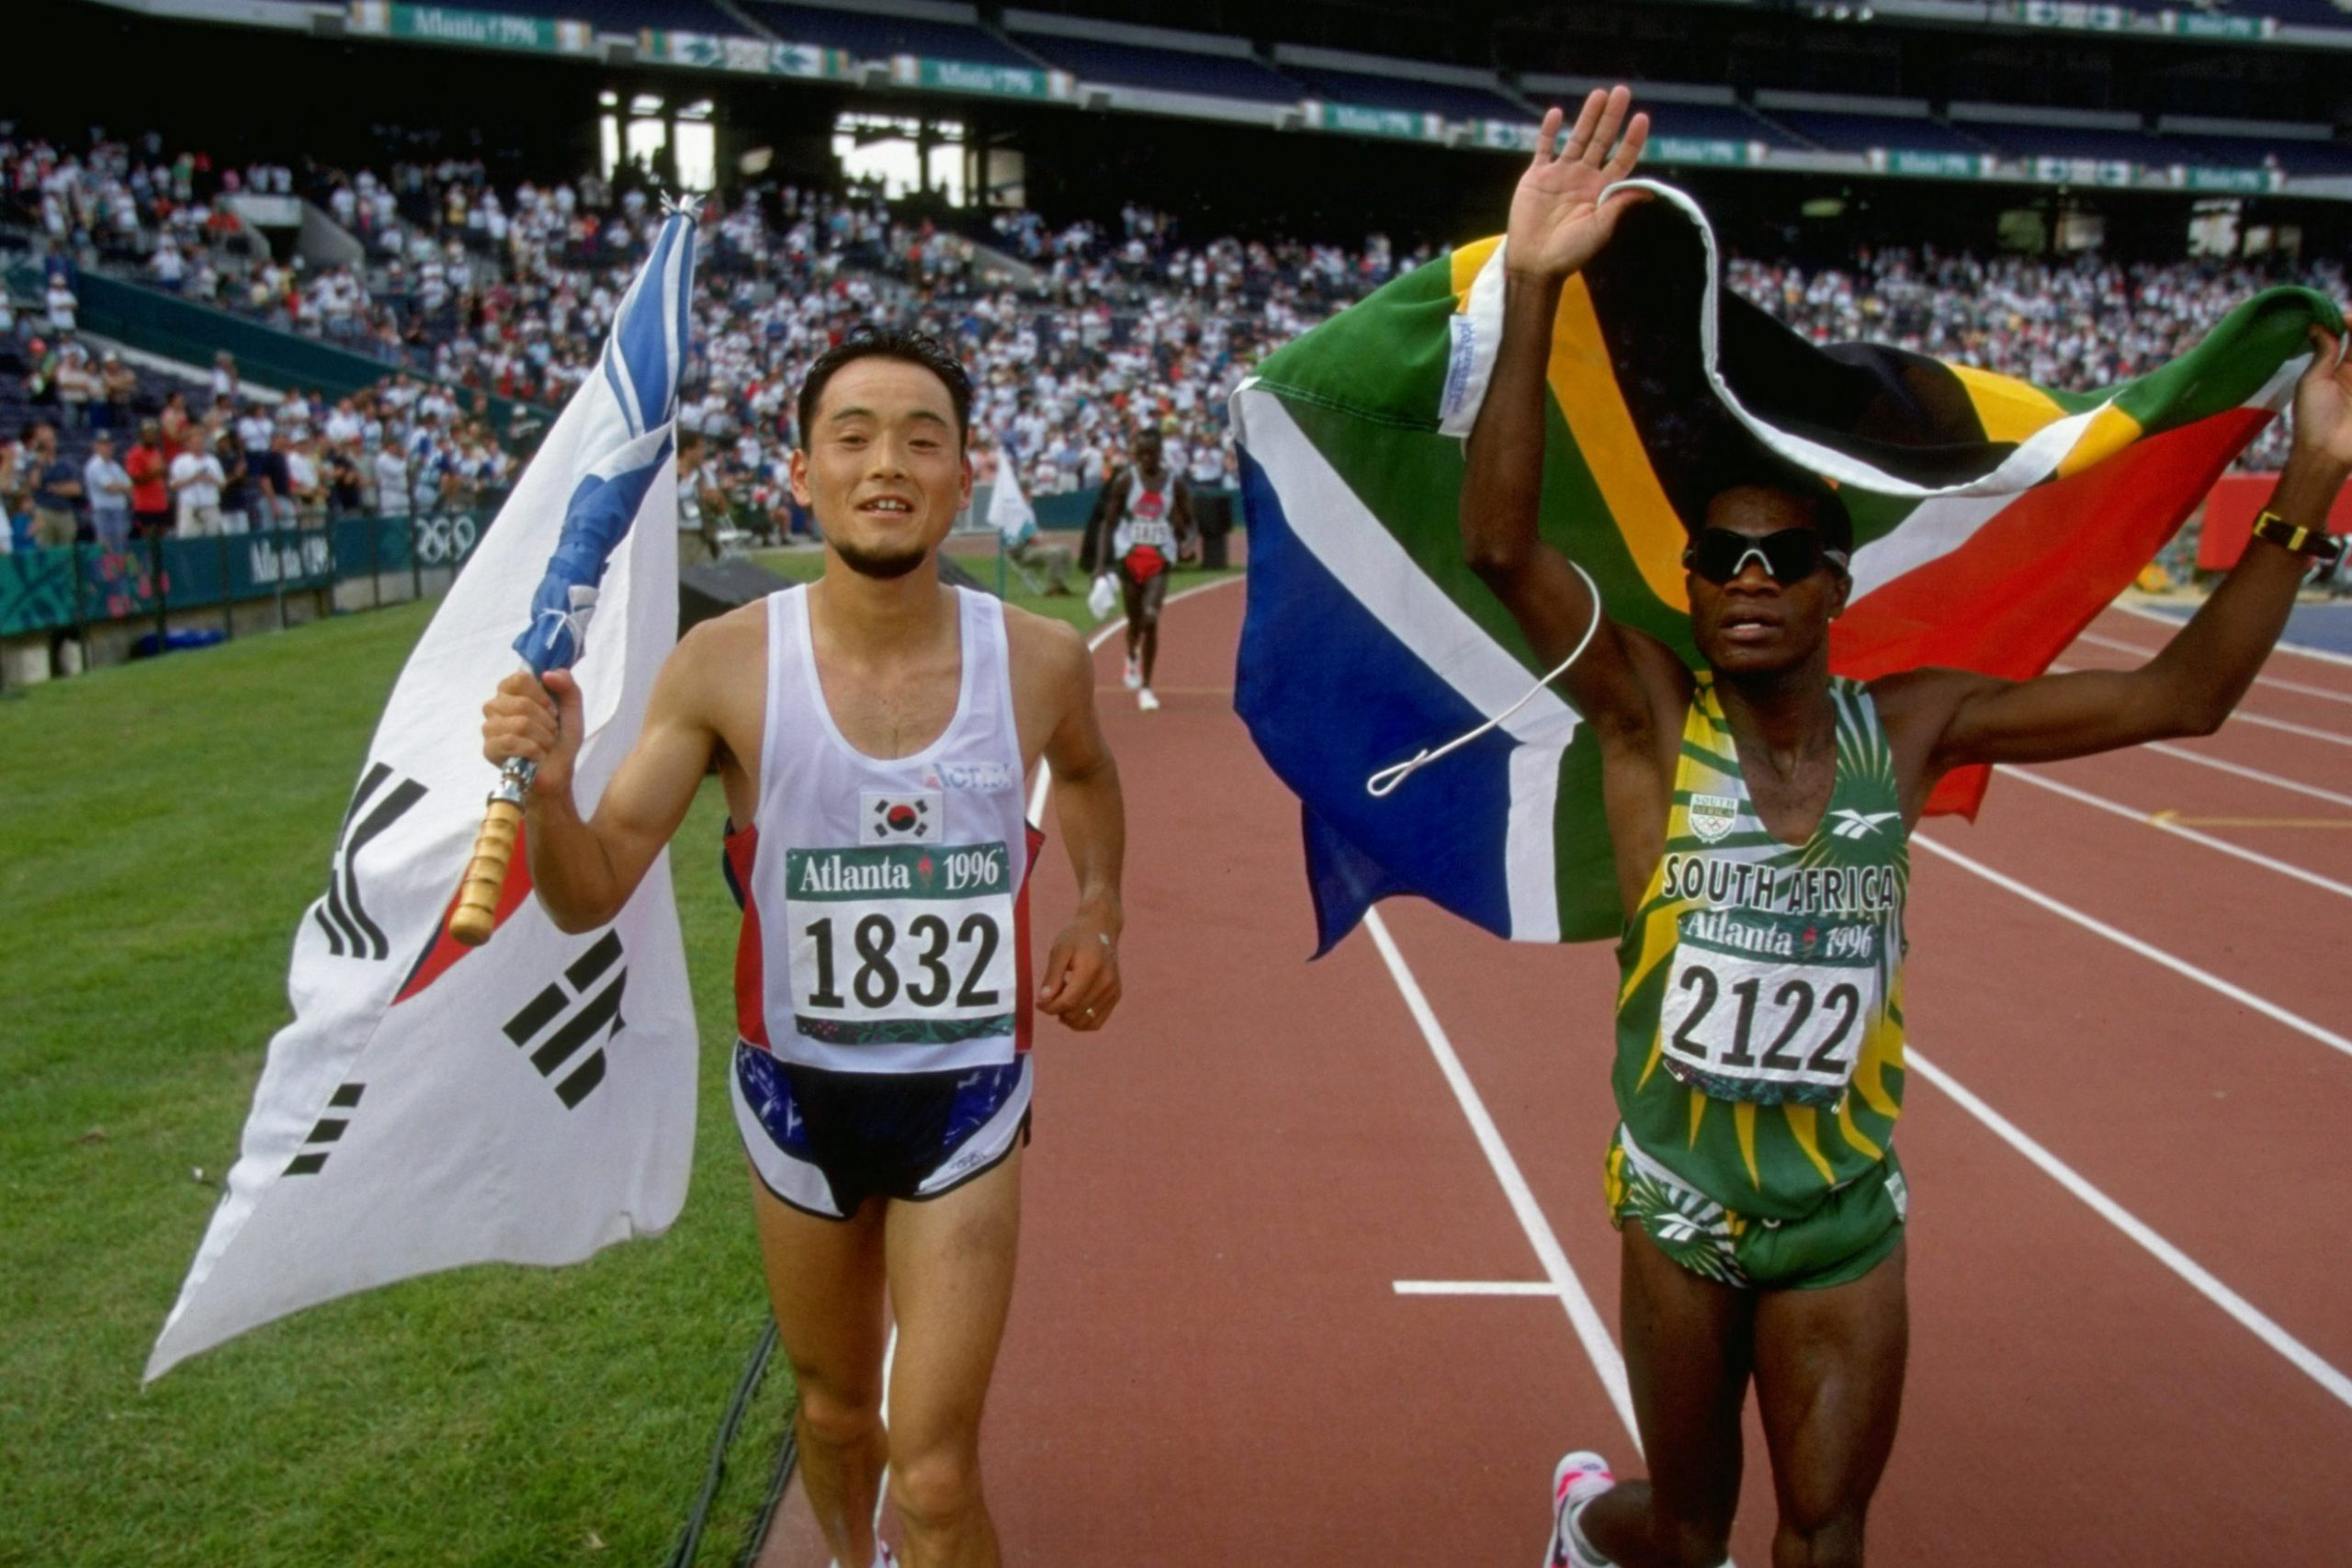 14 Aug 1996: Josia Thugwane celebrates with Bong-Ju Lee of South Korea after the men's marathon at the Summer Olympics in Atlanta, Georgia. Thugwane won gold with Lee taking silver. (Photograph by Mike Powell/ Allsport)